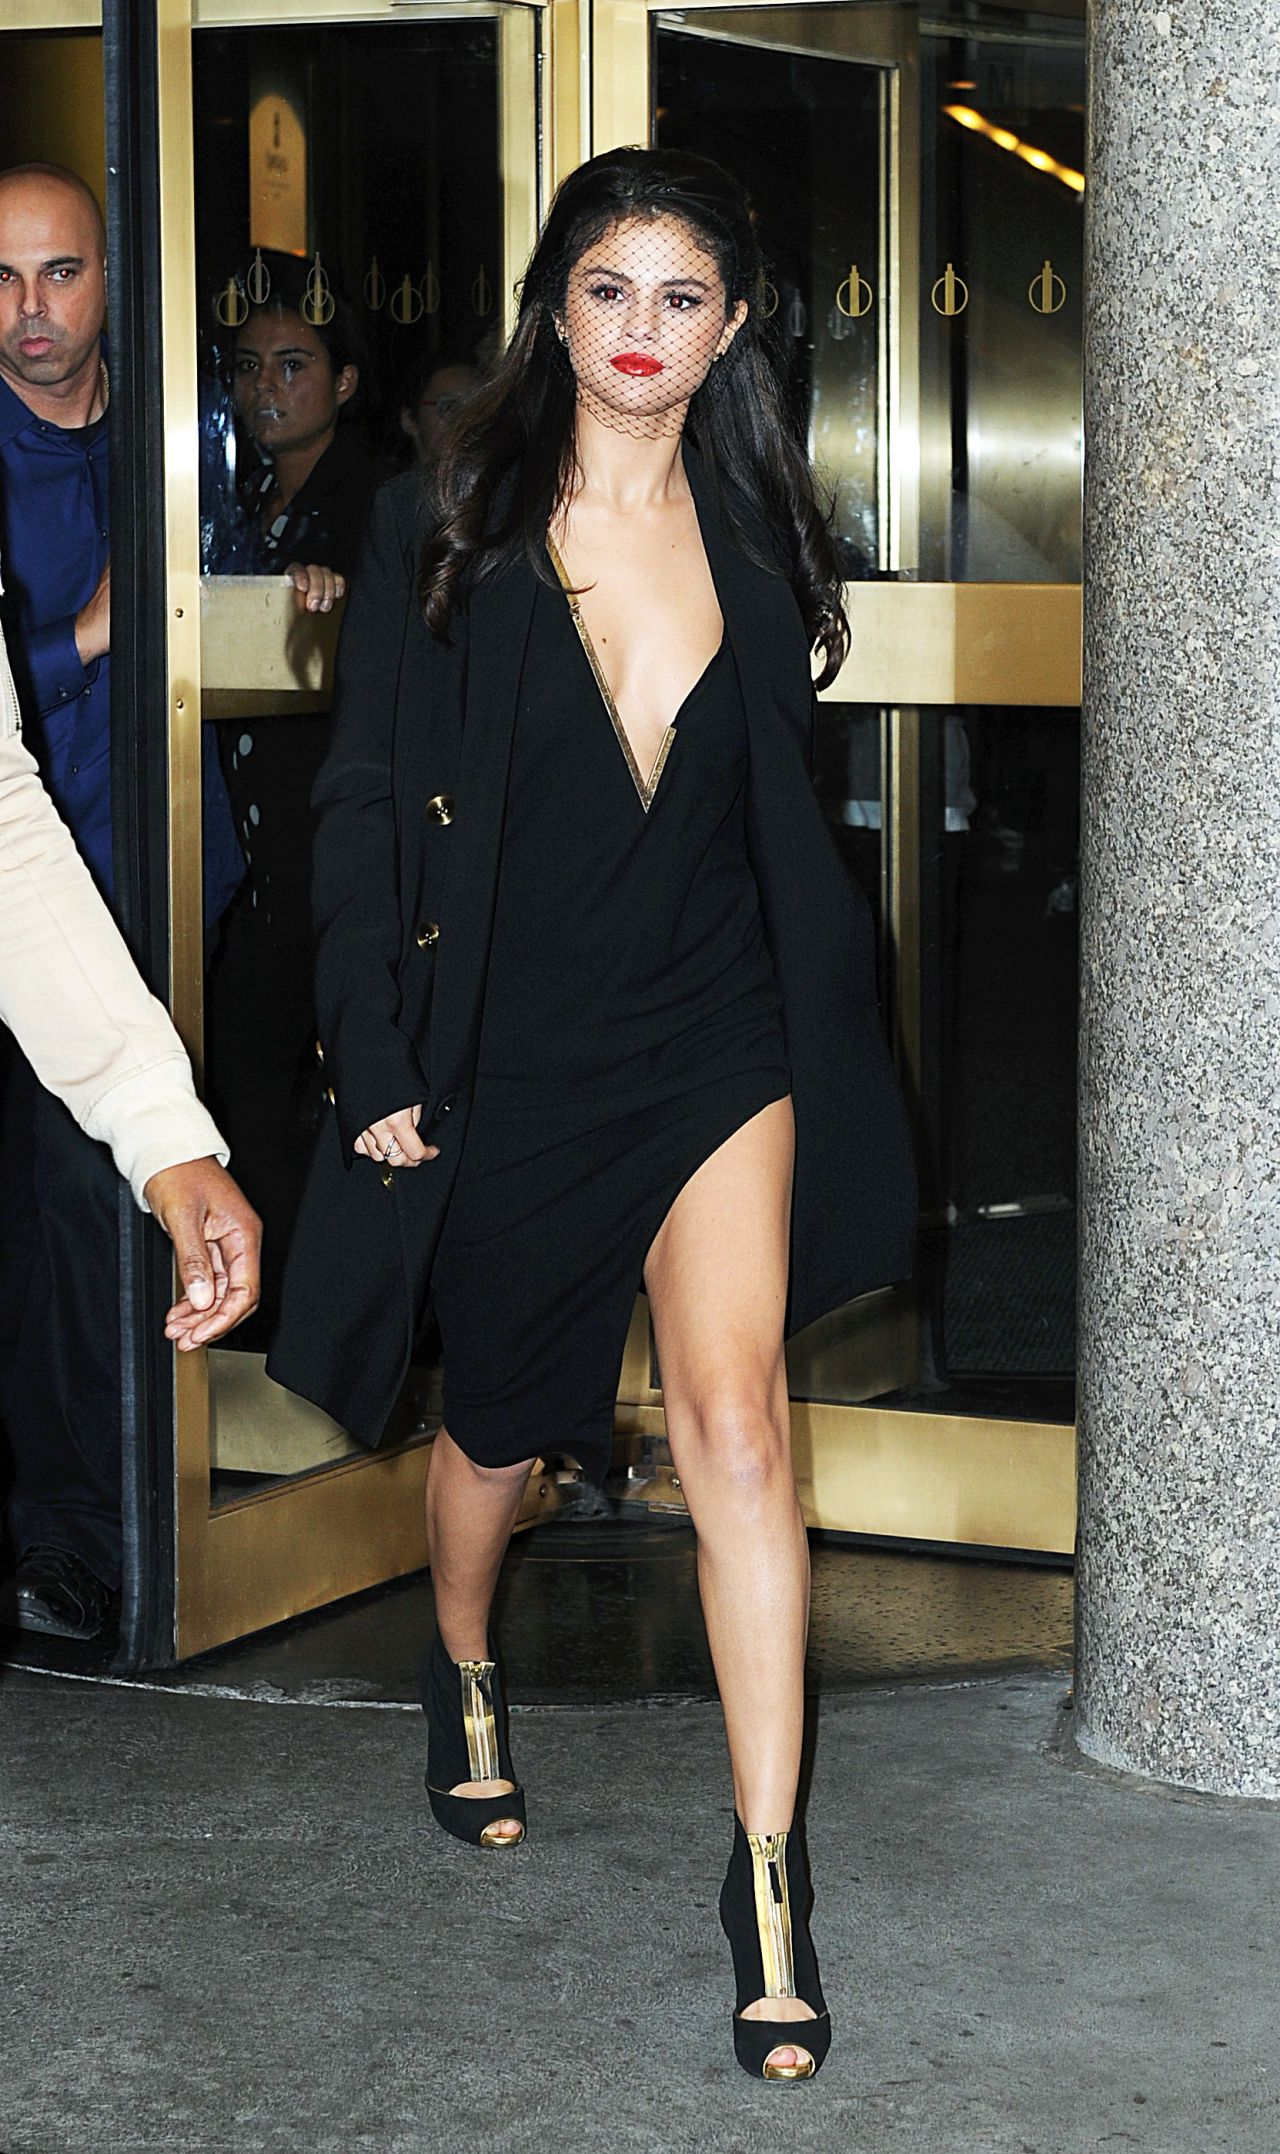 selena-gomez-leaving-the-tonight-show-studios-in-nyc-october-2015_11